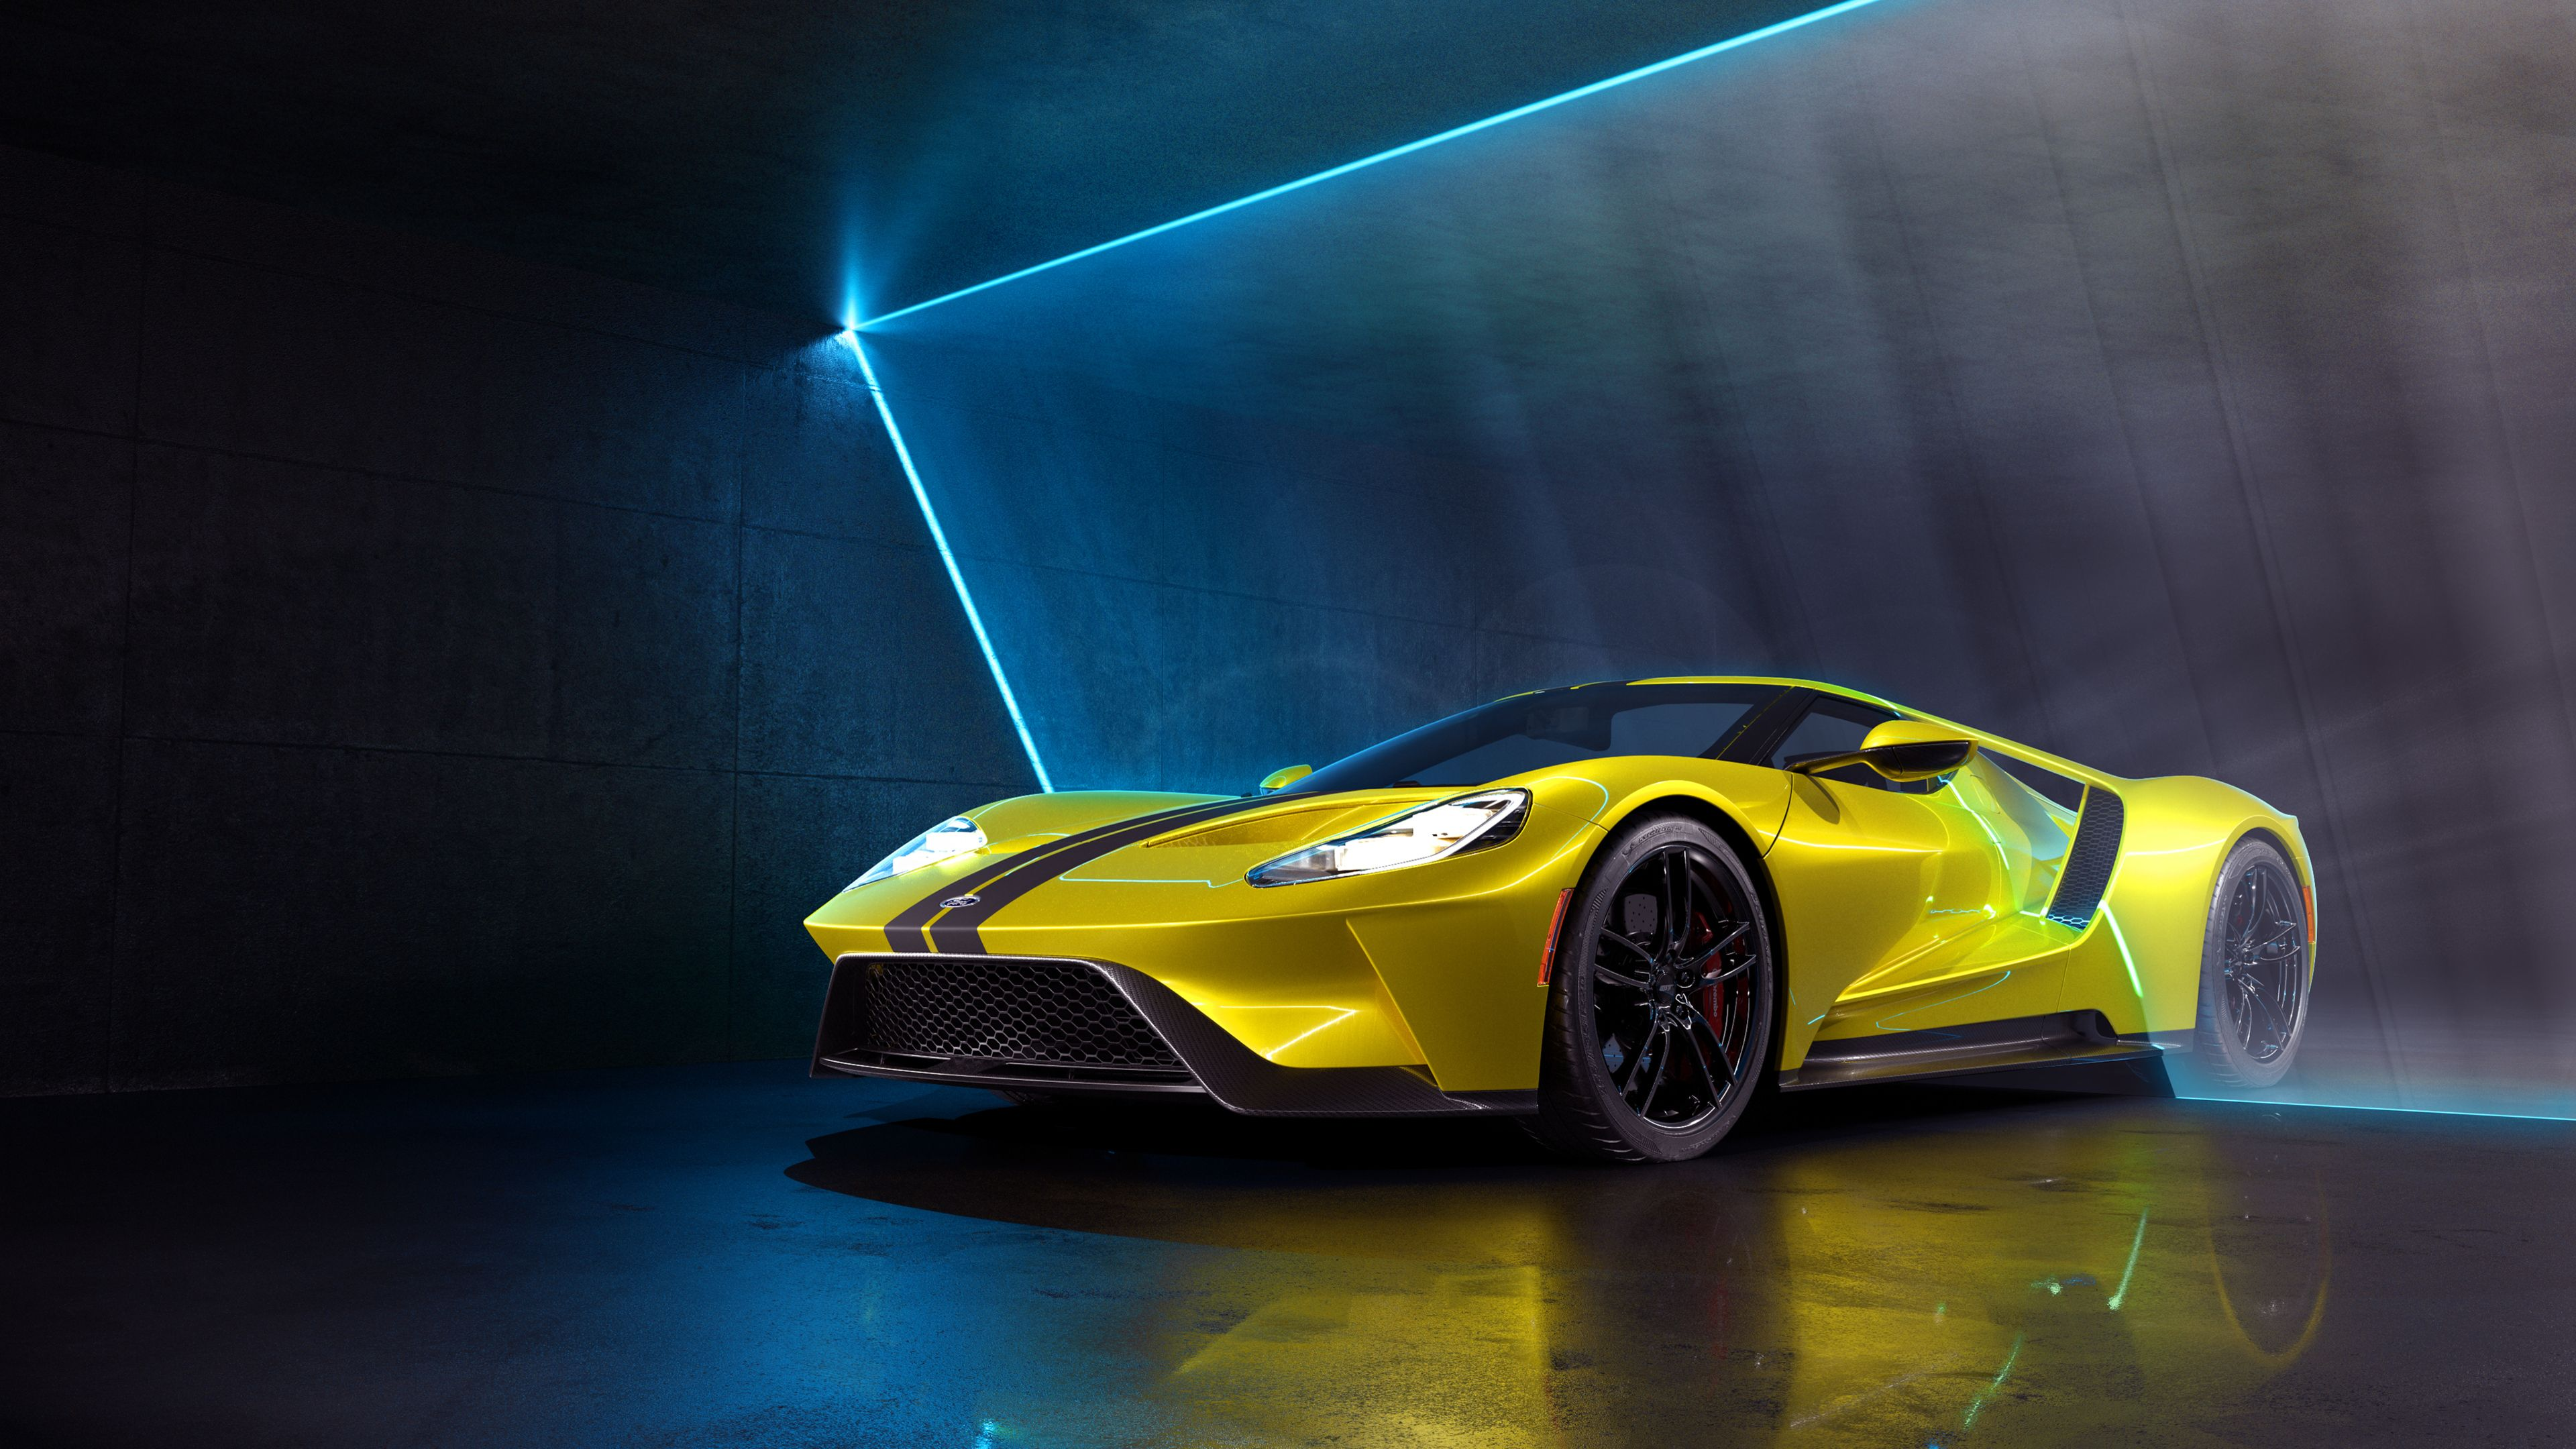 Ford Gt Cgi Hd Wallpapers Ford Wallpapers Ford Gt Wallpapers Cars Wallpapers Behance Wallpapers 4k Wallpapers Ford Gt Ford Gt Wallpapers Car Wallpaper